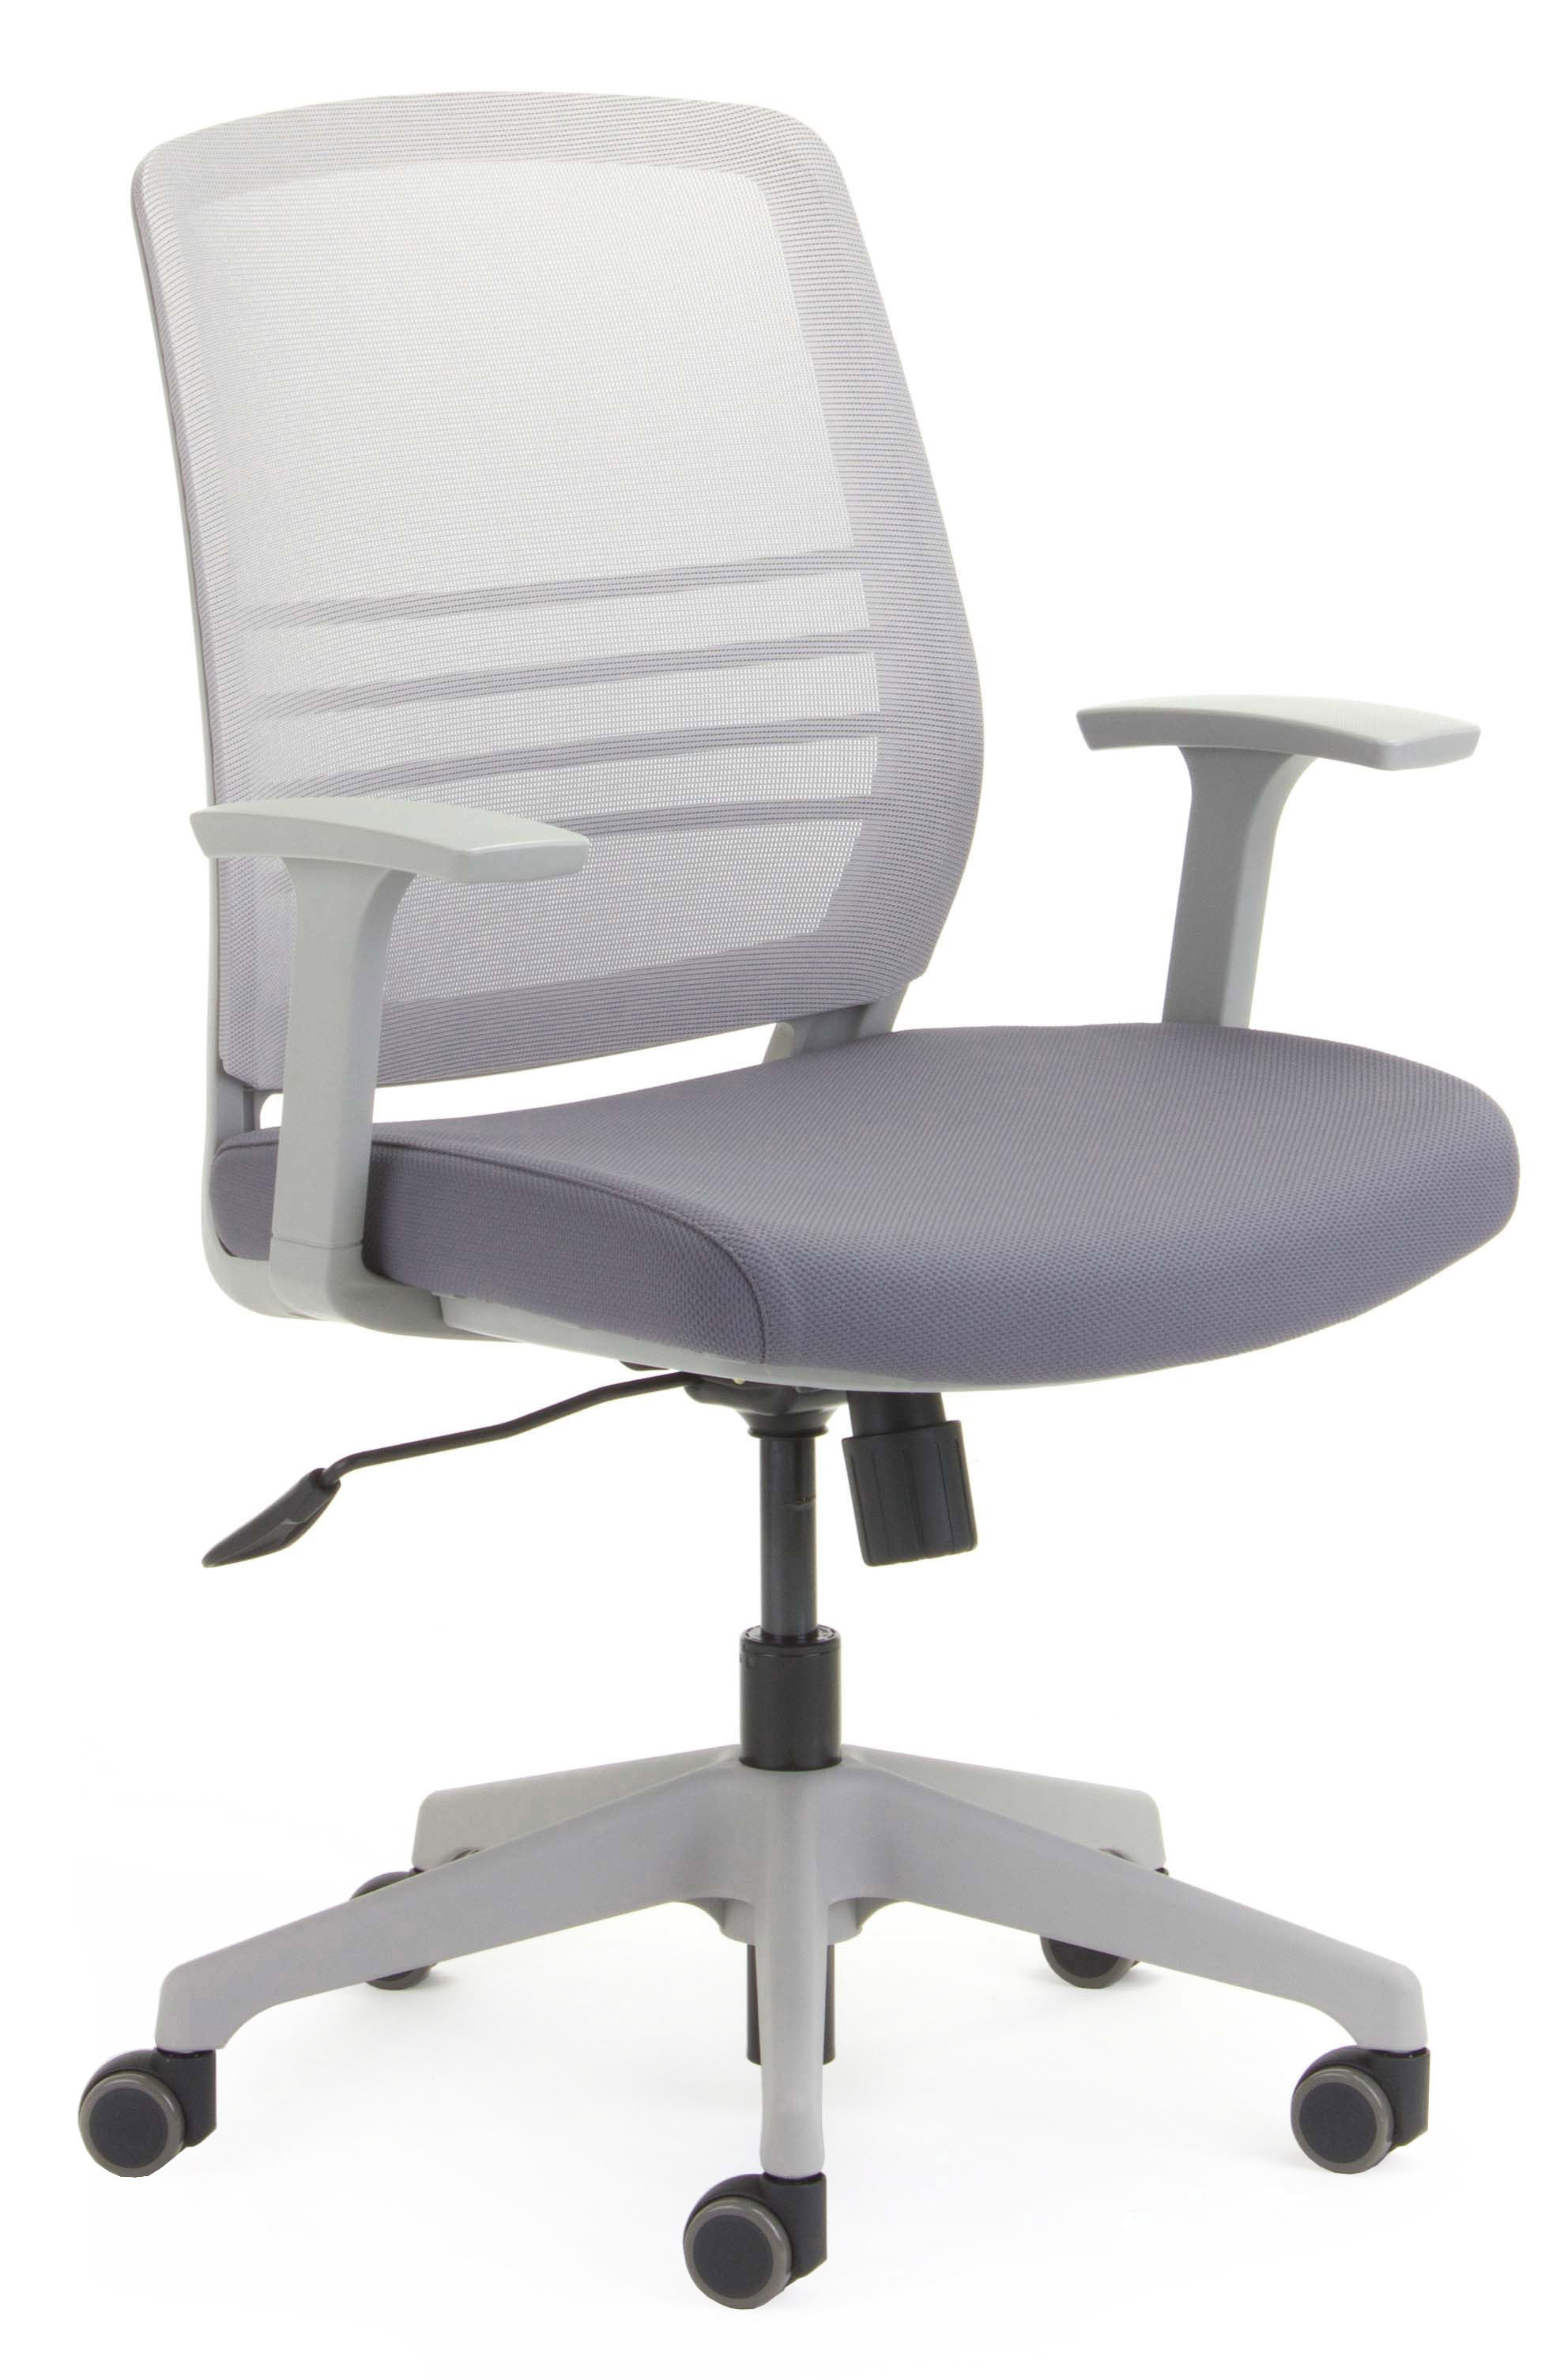 Cobi Mesh Chair Grey Office Furniture Desk Chairs Task